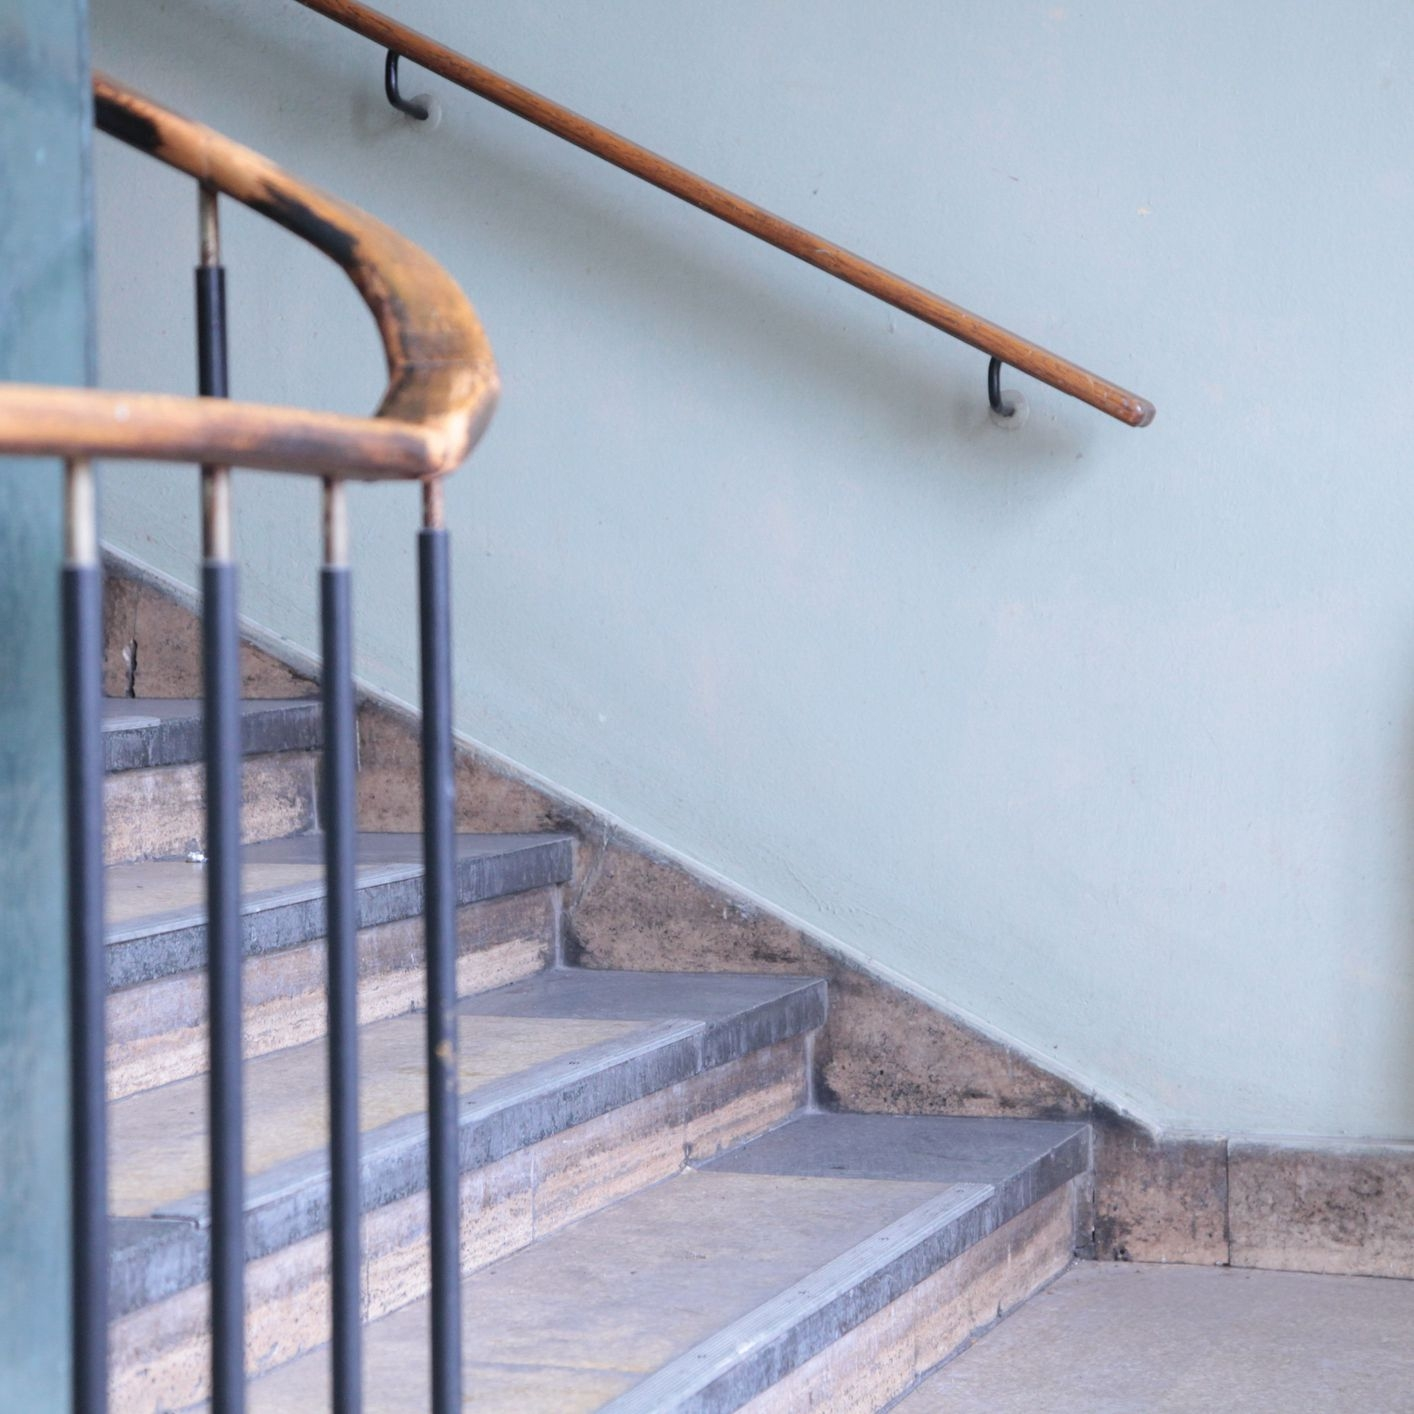 Stair Railing Building Code Summarized | Wooden Handrails For Stairs Interior | Design | Brown | Simple | Wall Mounted | Indoor